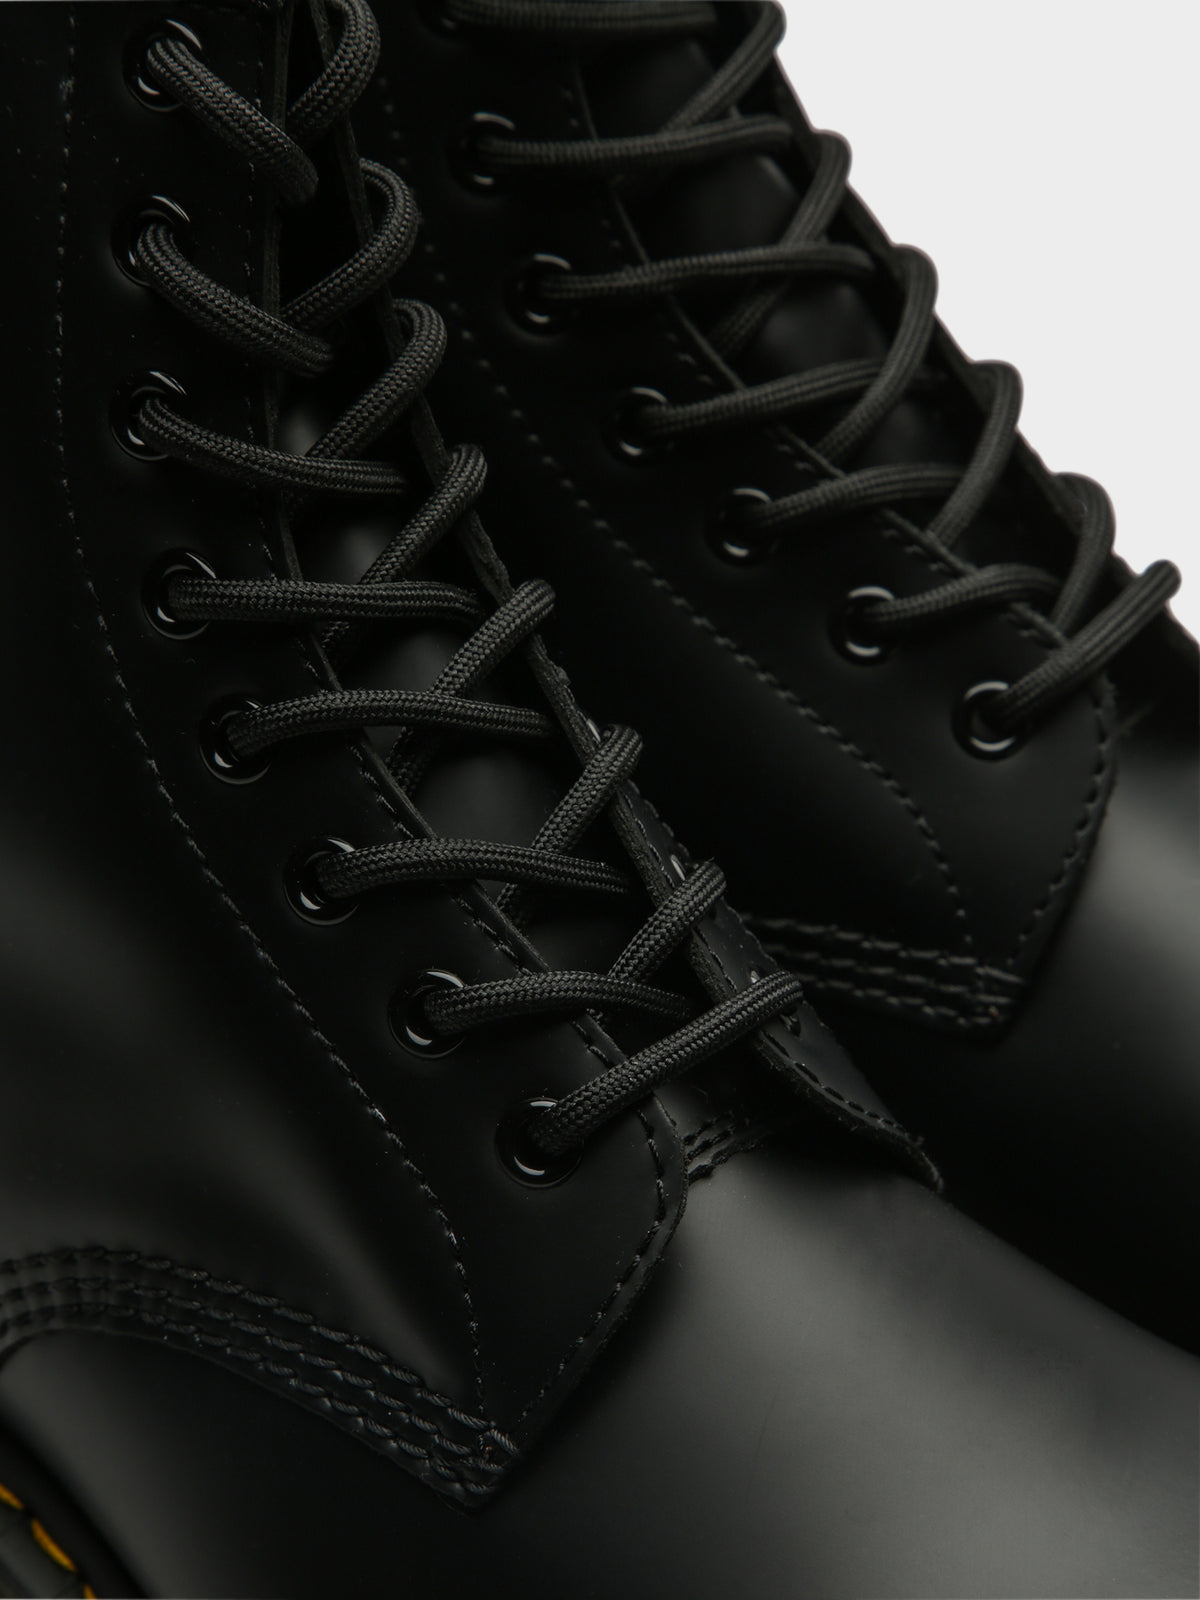 Unisex 1460 Lace-Up Boots in Smooth Black Leather